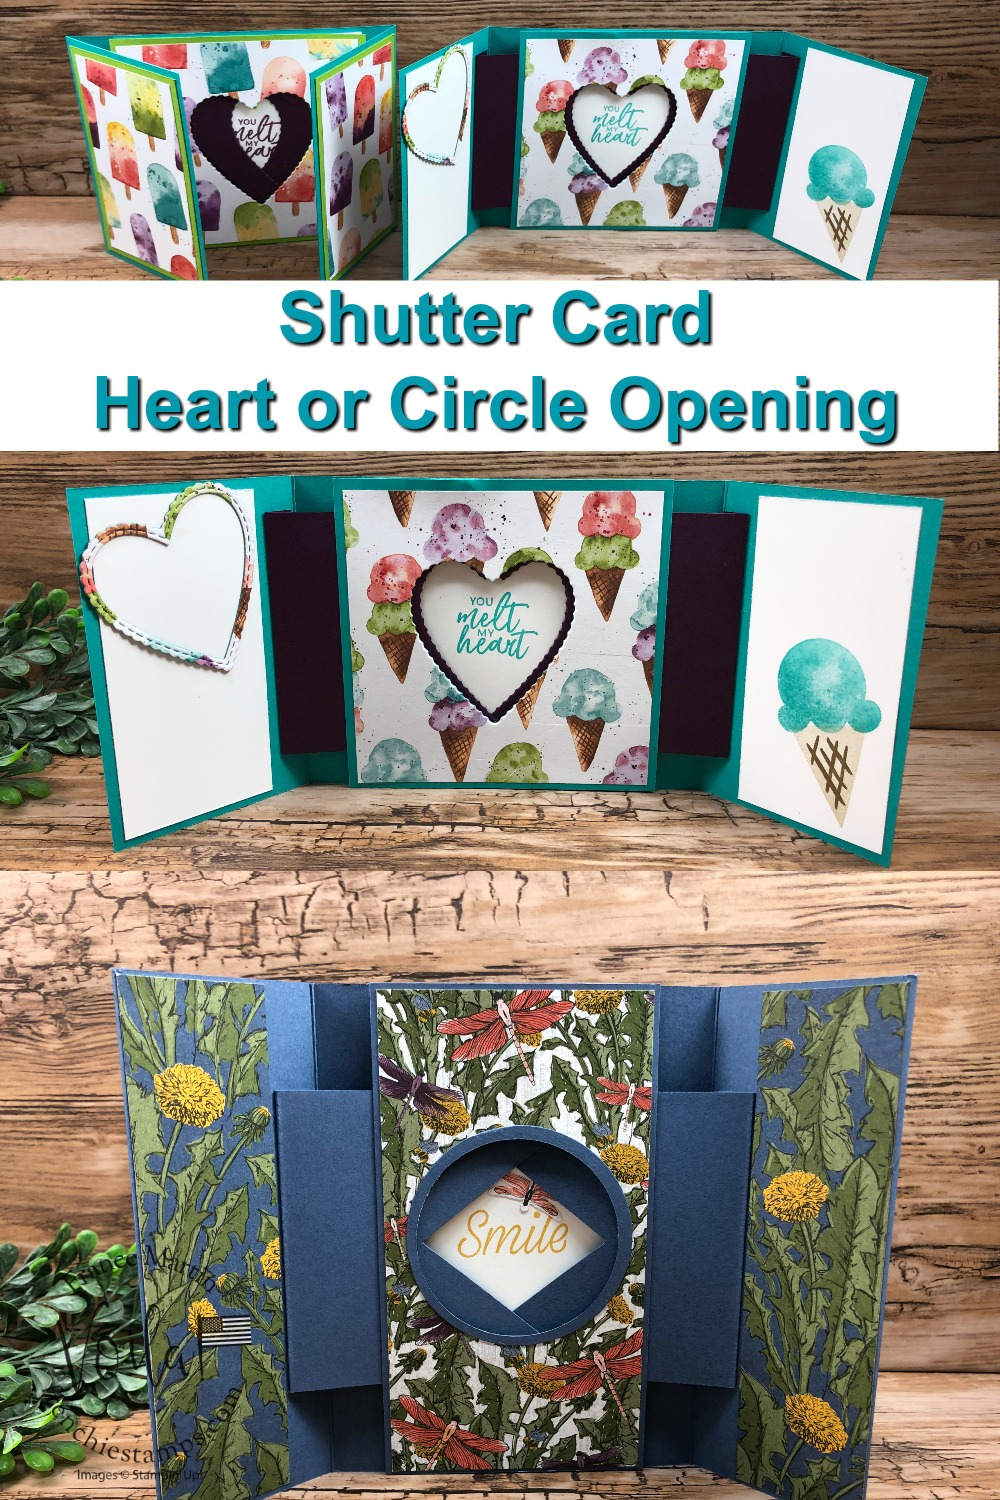 Shutter Card Heart and Circle Opening